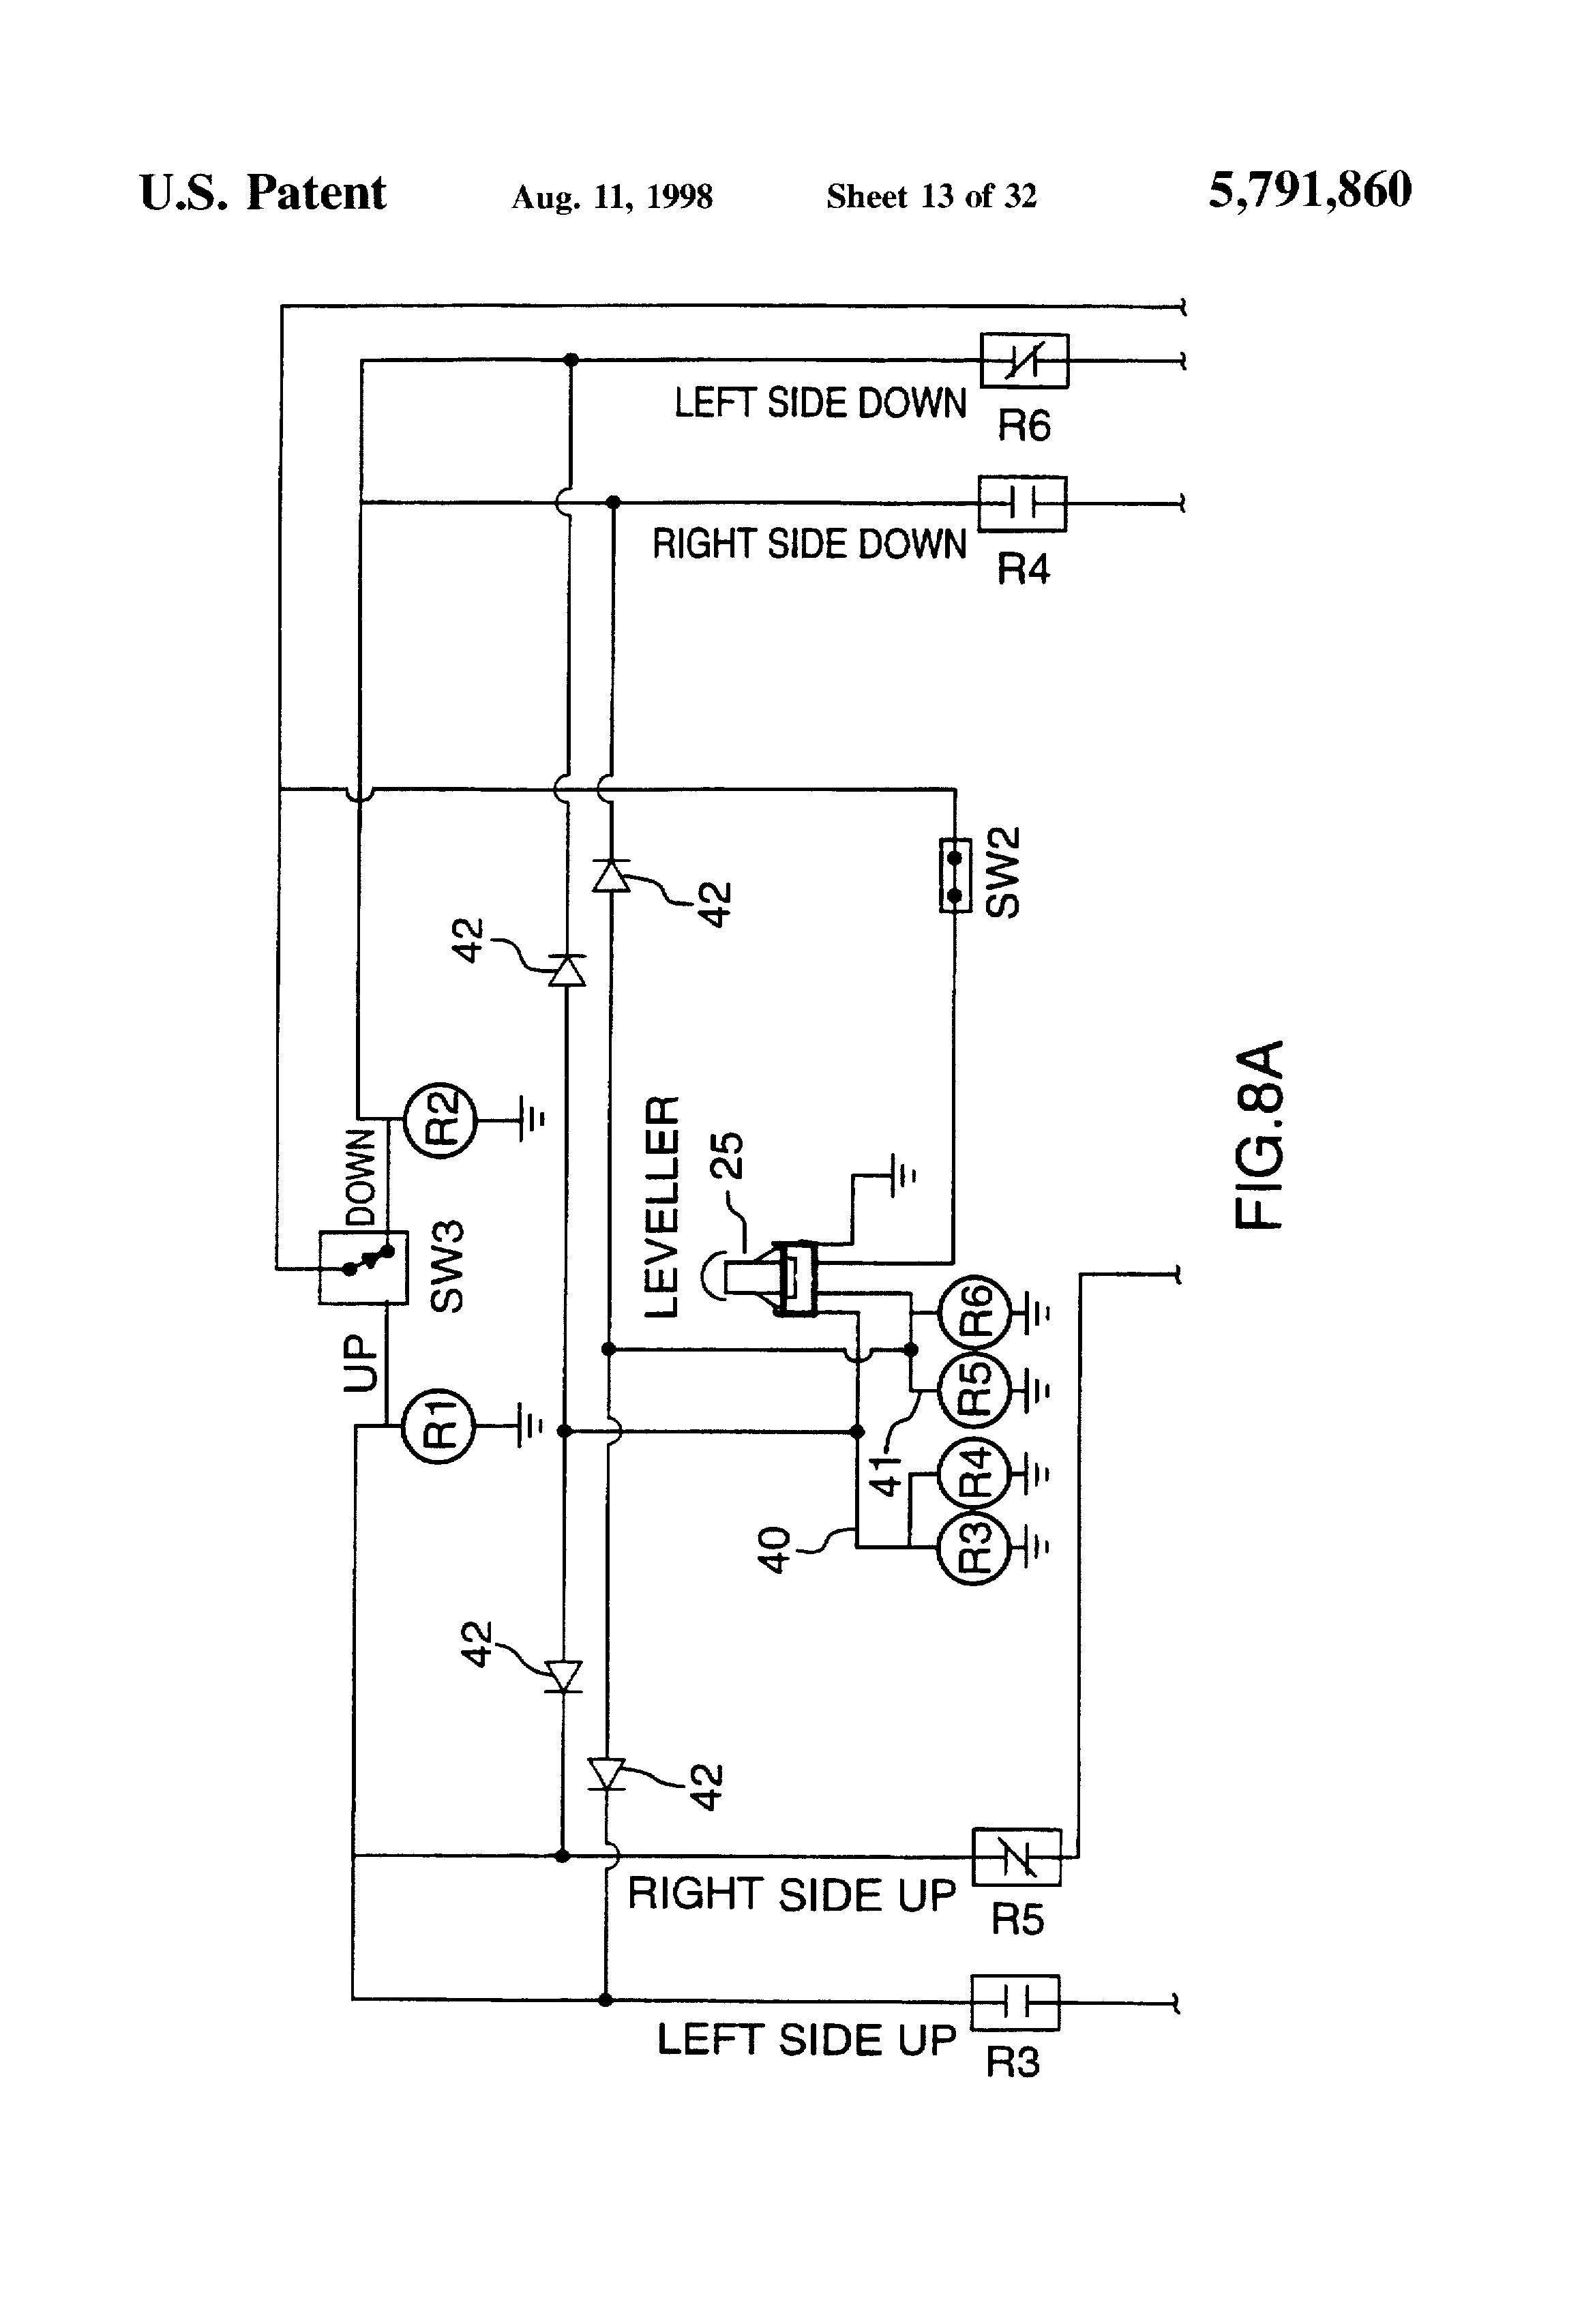 Maxon Liftgate Switch Wiring Diagram 36 Images Lionel Control As Well Spst Toggle Us5791860 13 Patent Hydraulic Platform Lift For A Truck Tailgate Gate